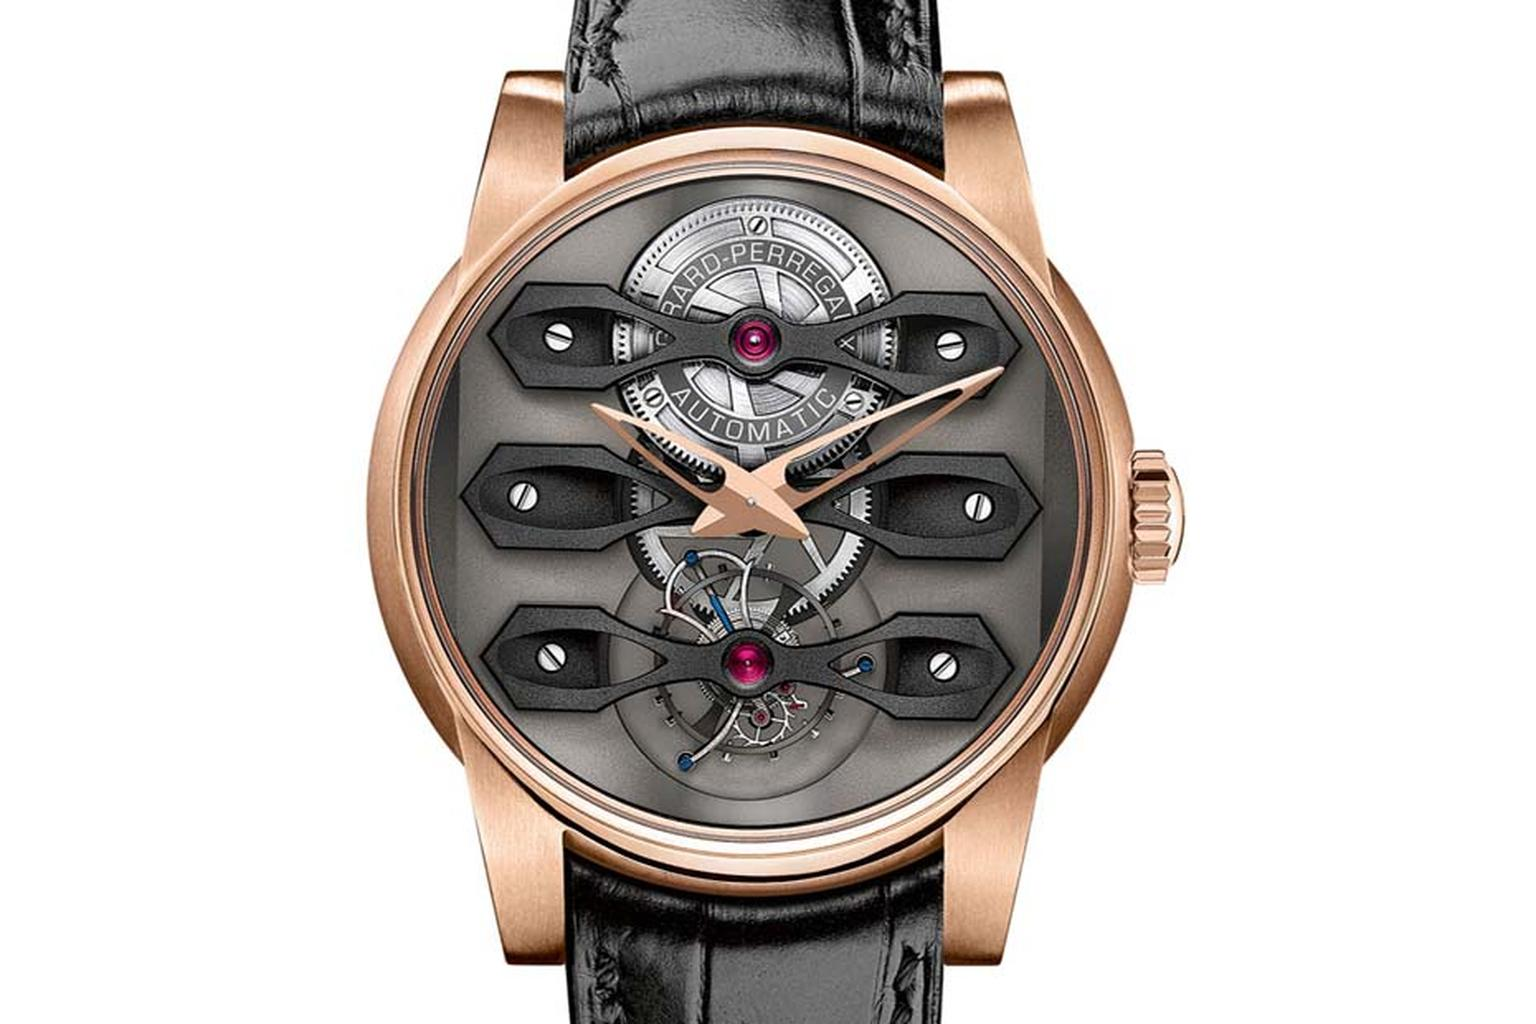 The new Girard-Perregaux Neo-Tourbillon watch is a timepiece with architectural details, which is precisely what Stefano Macaluso was aiming for when he designed the Neo-Tourbillon with three distinct tourbillon bridges